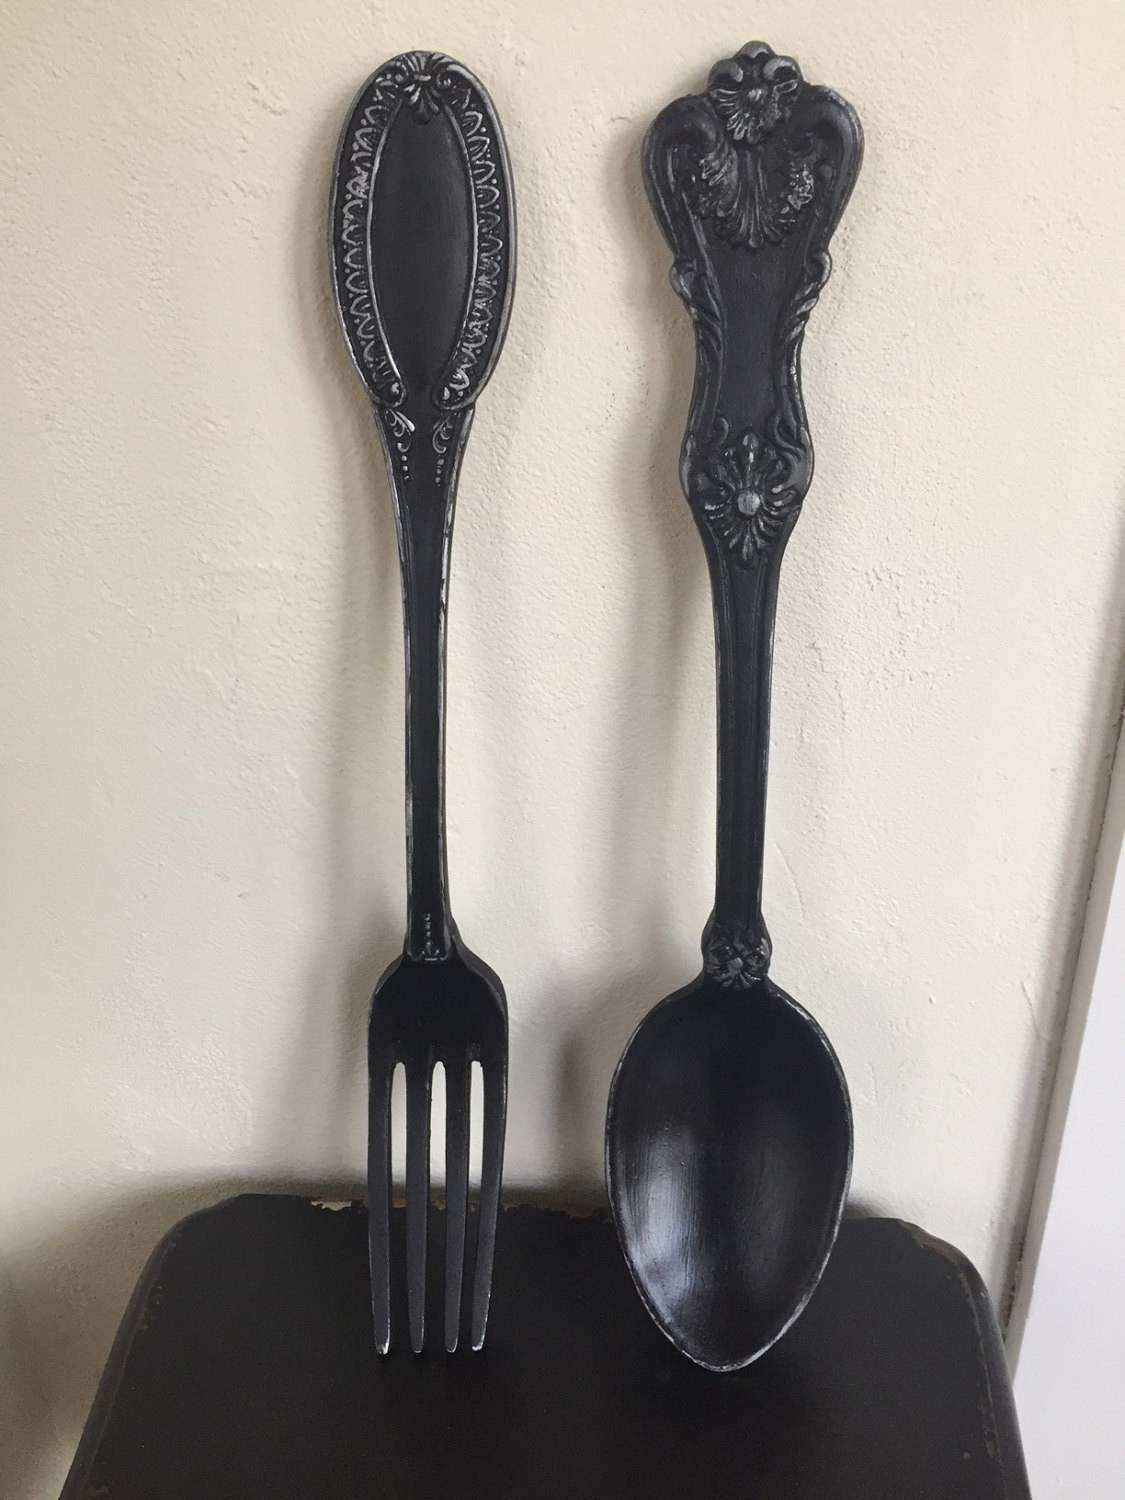 Giant Spoon and fork Wall Decor New fork and Spoon Large Wall Decor Distressed Shabby Chic Black